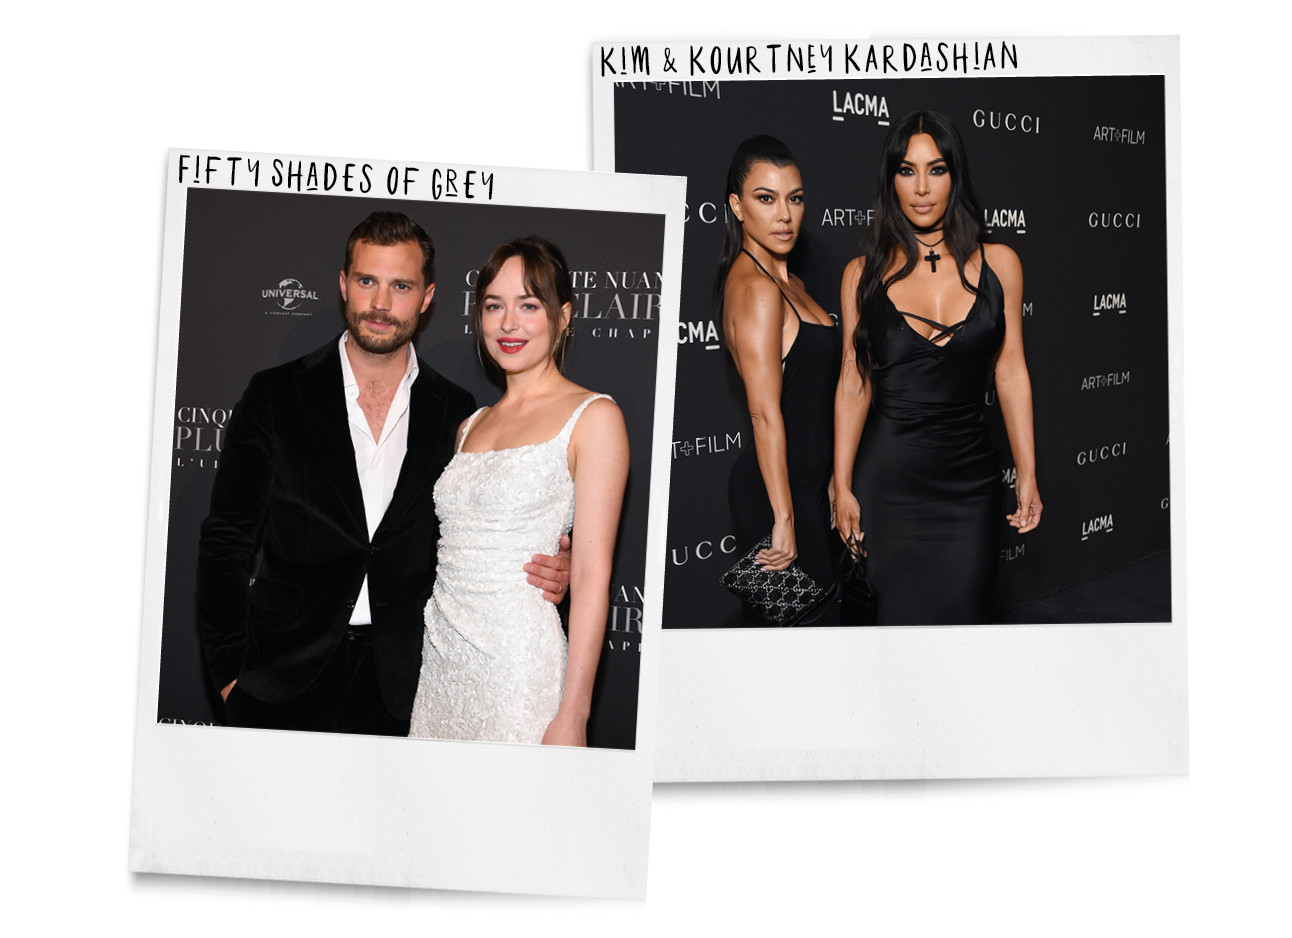 kimkardashian-kourney-Fifty Shades Of Grey-trendingtopic